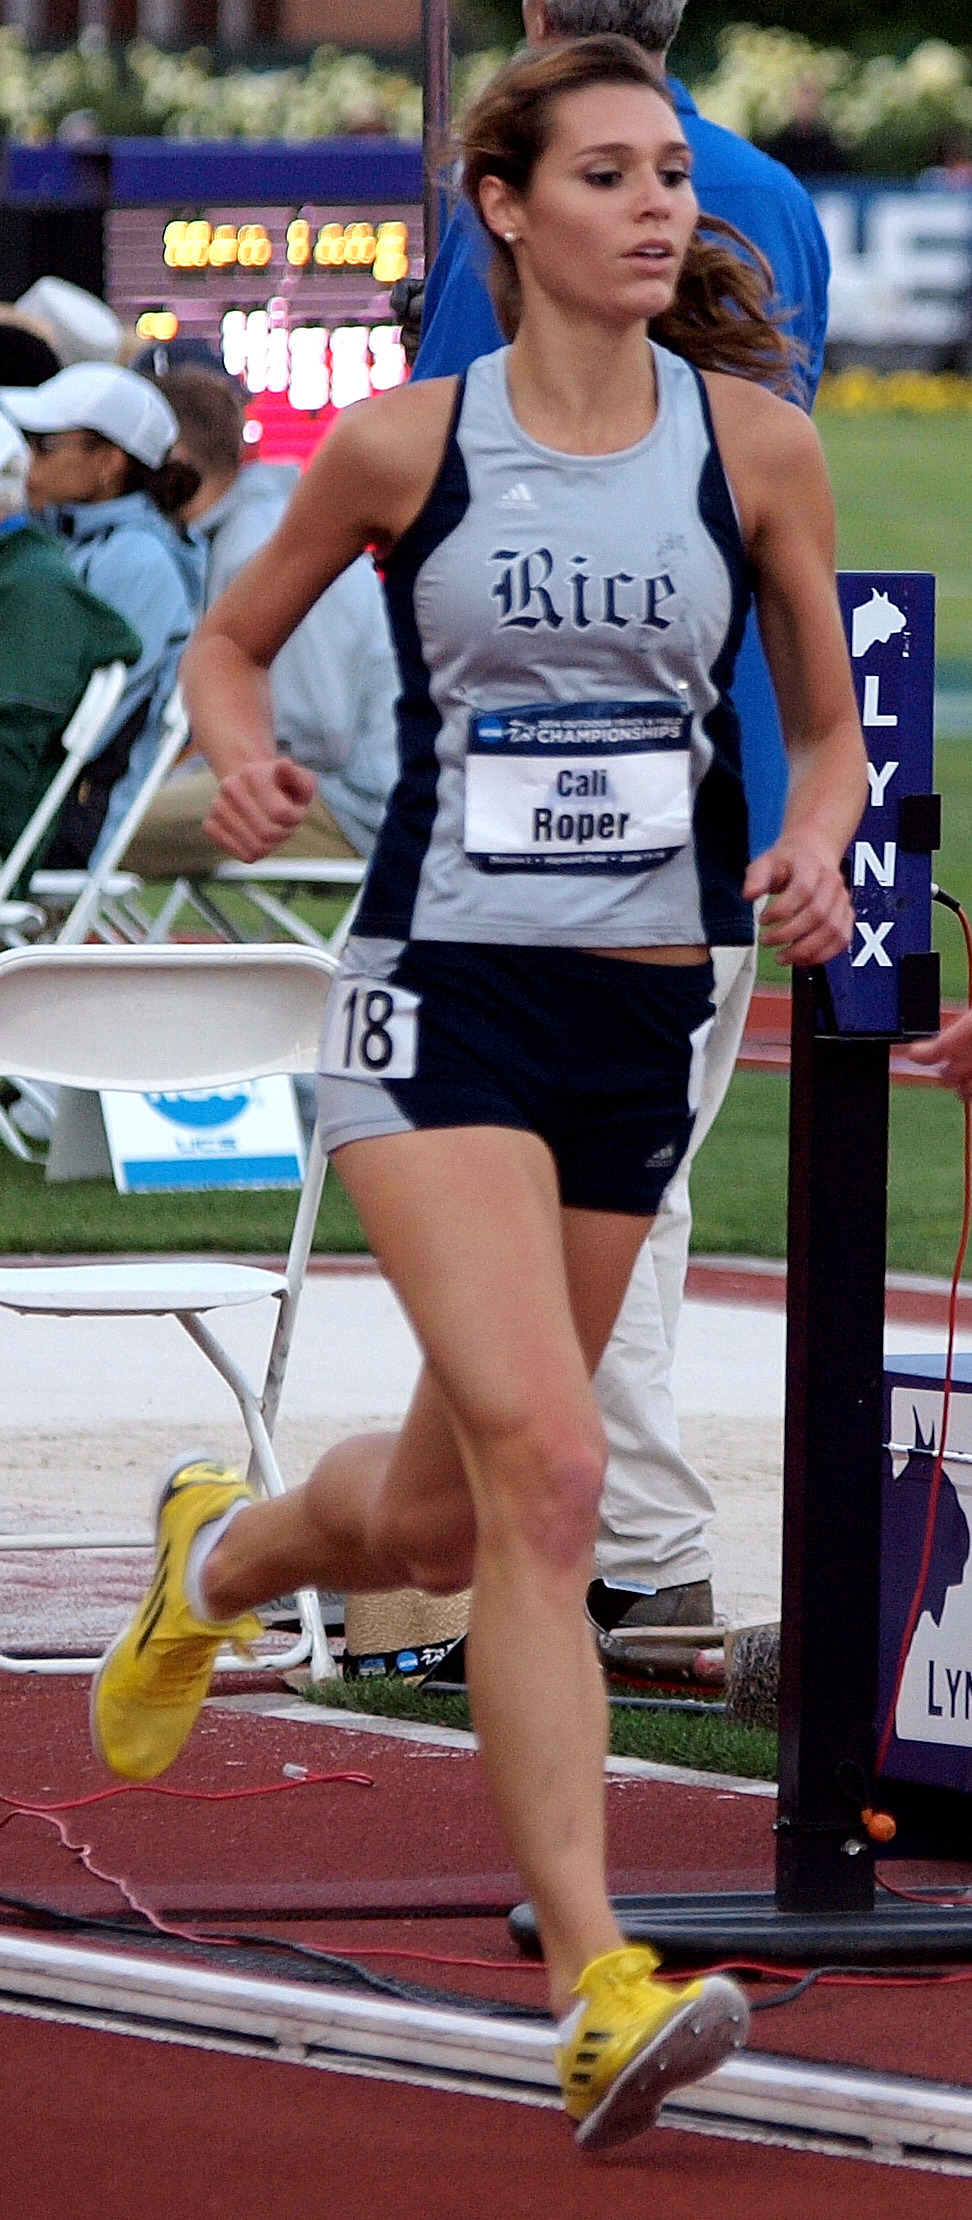 Freshman Cali Roper placed 22nd in the 10,000m at the NCAA Outdoor Championships on Thursday.